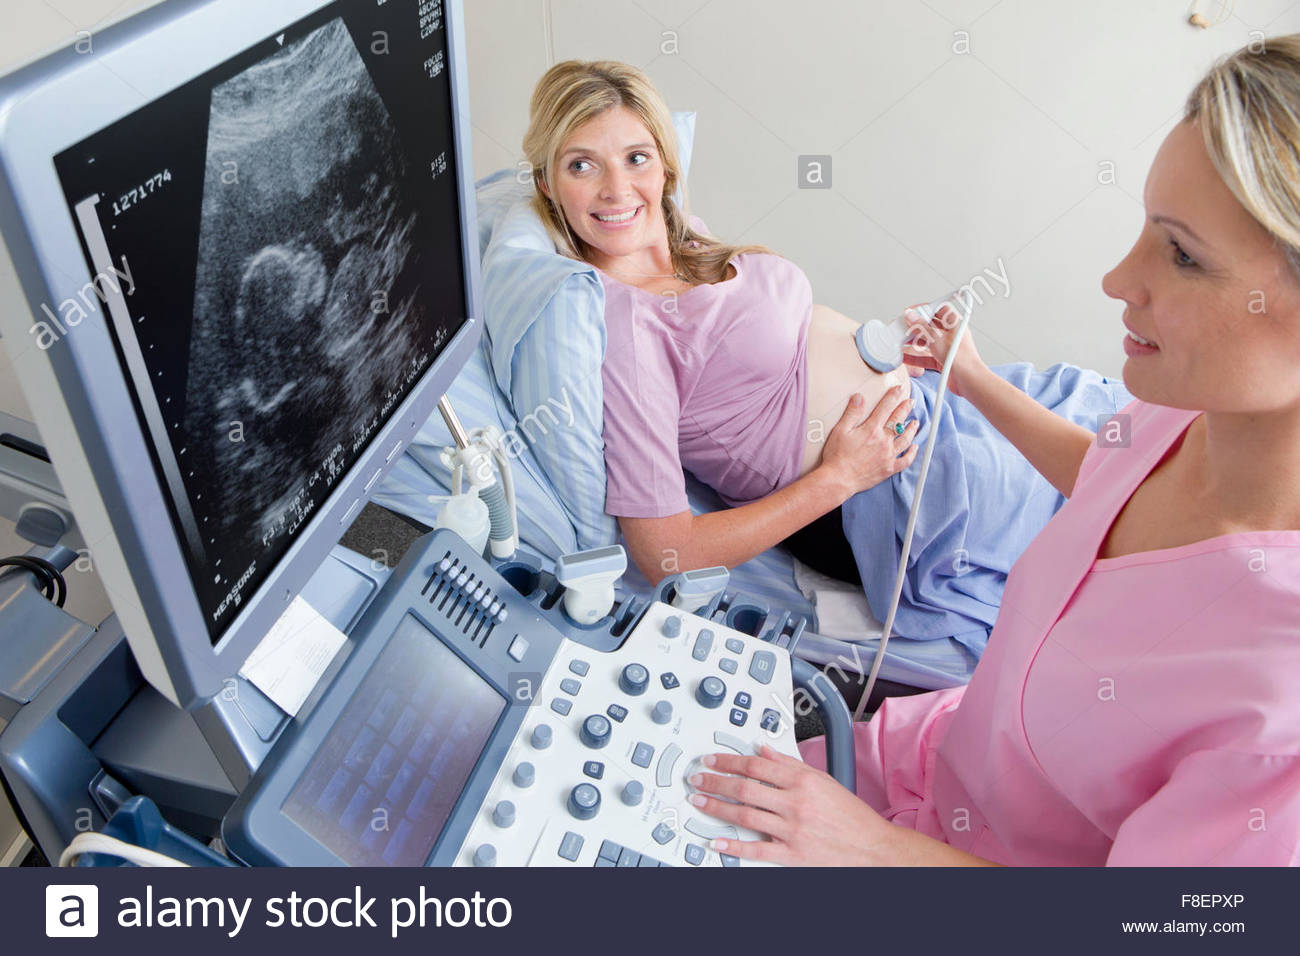 Nurse performing ultrasound on smiling pregnant woman in hospital - Stock Image